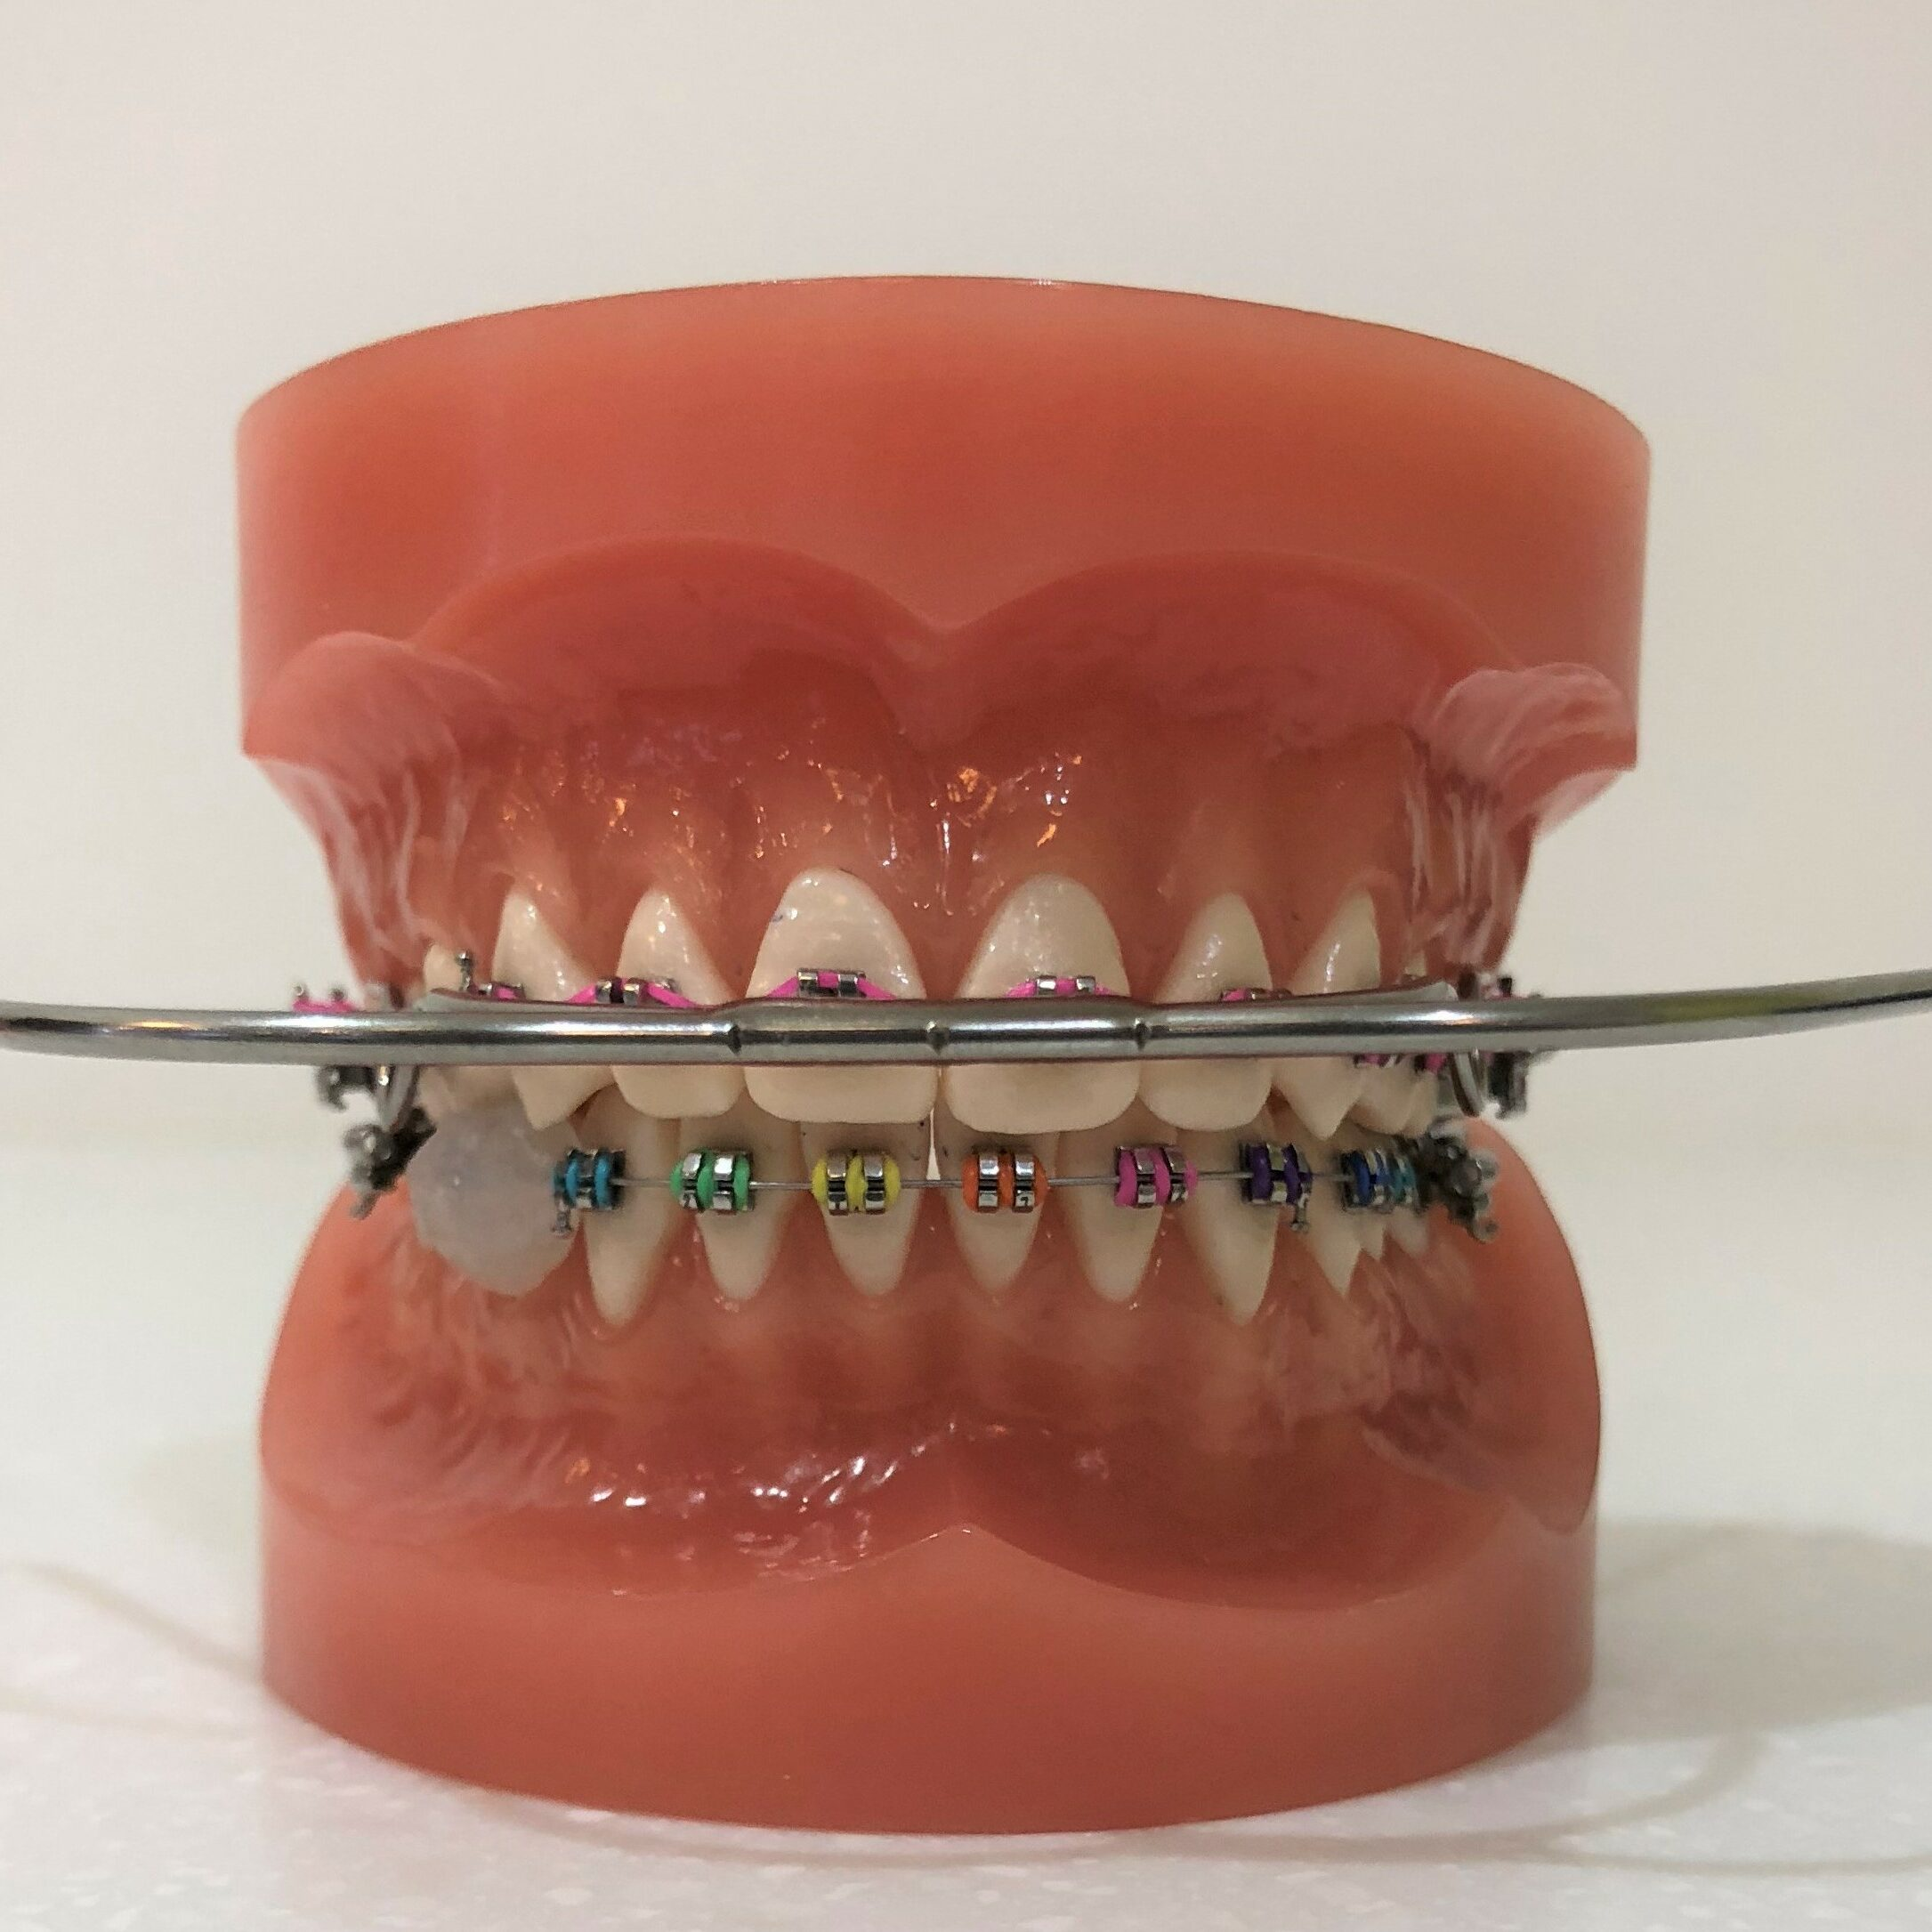 Braces and cat's whiskers, the braces precisely align the teeth and in rare cases the cat's whiskers can be used to improve upper to lower teeth and gain space.